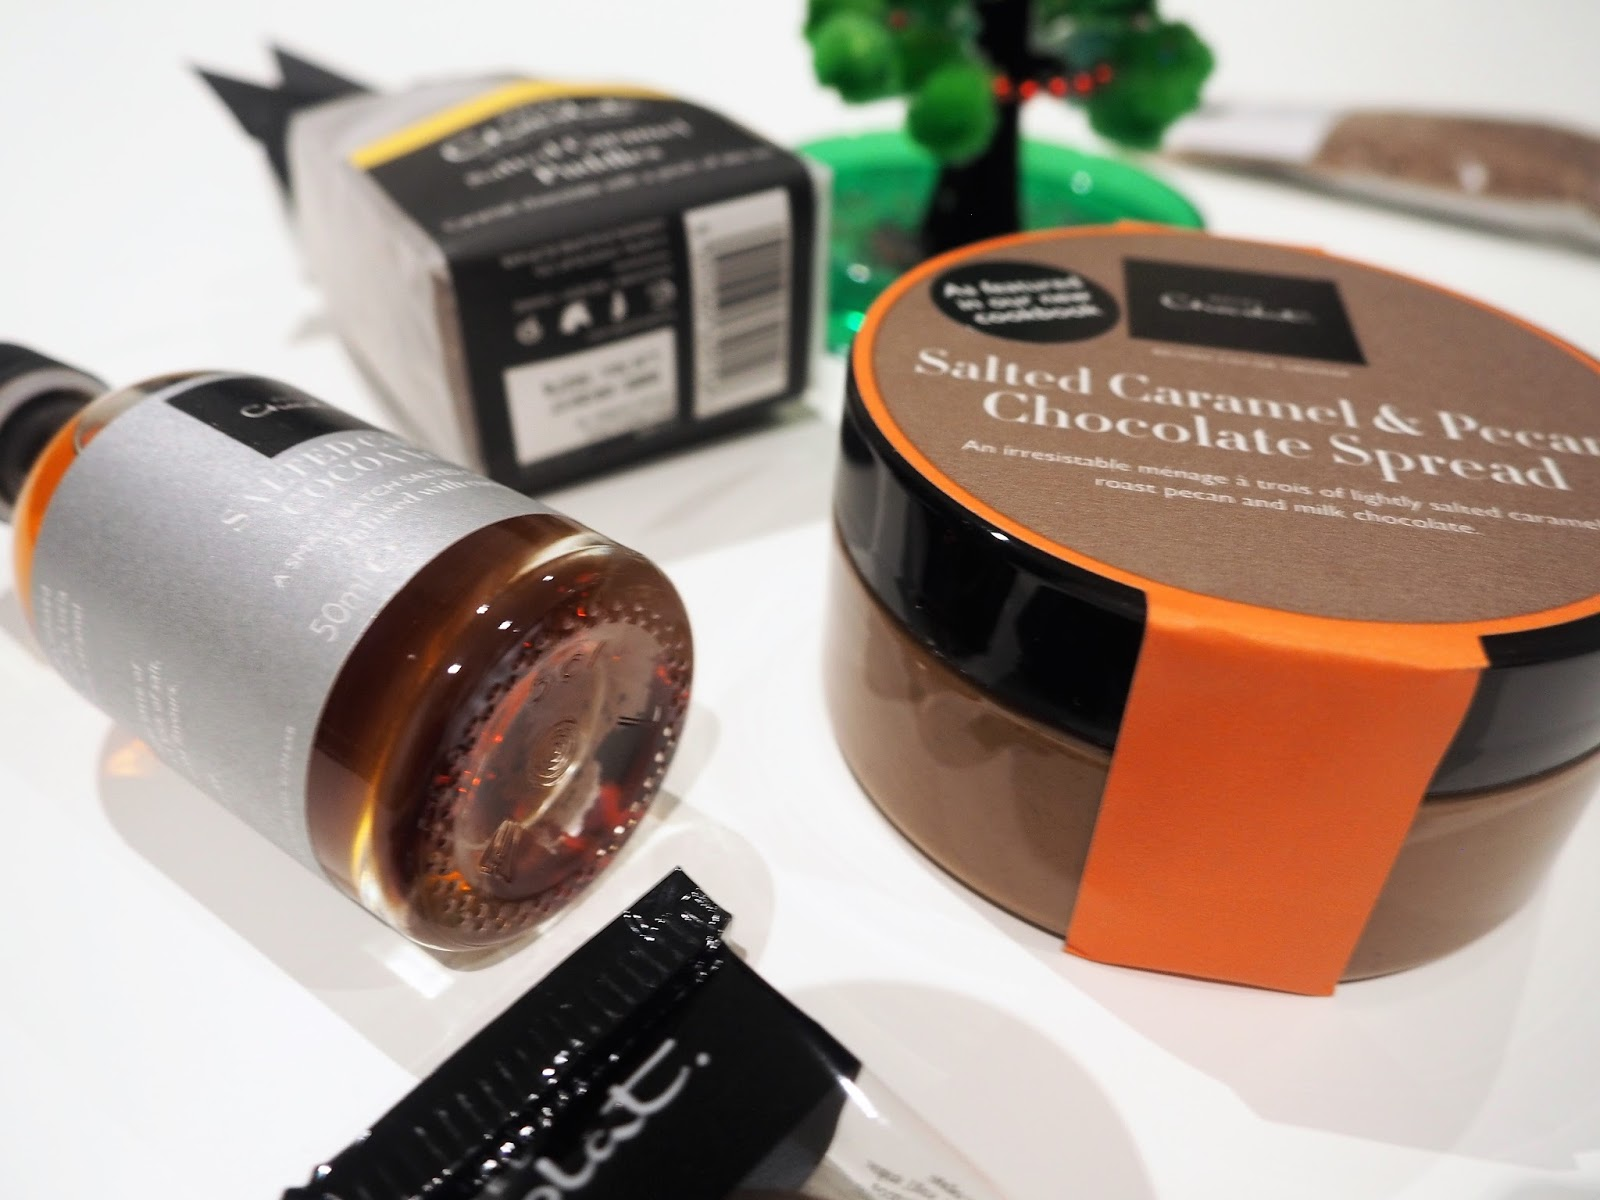 Hotel Chocolat: The Salted Caramel Collection